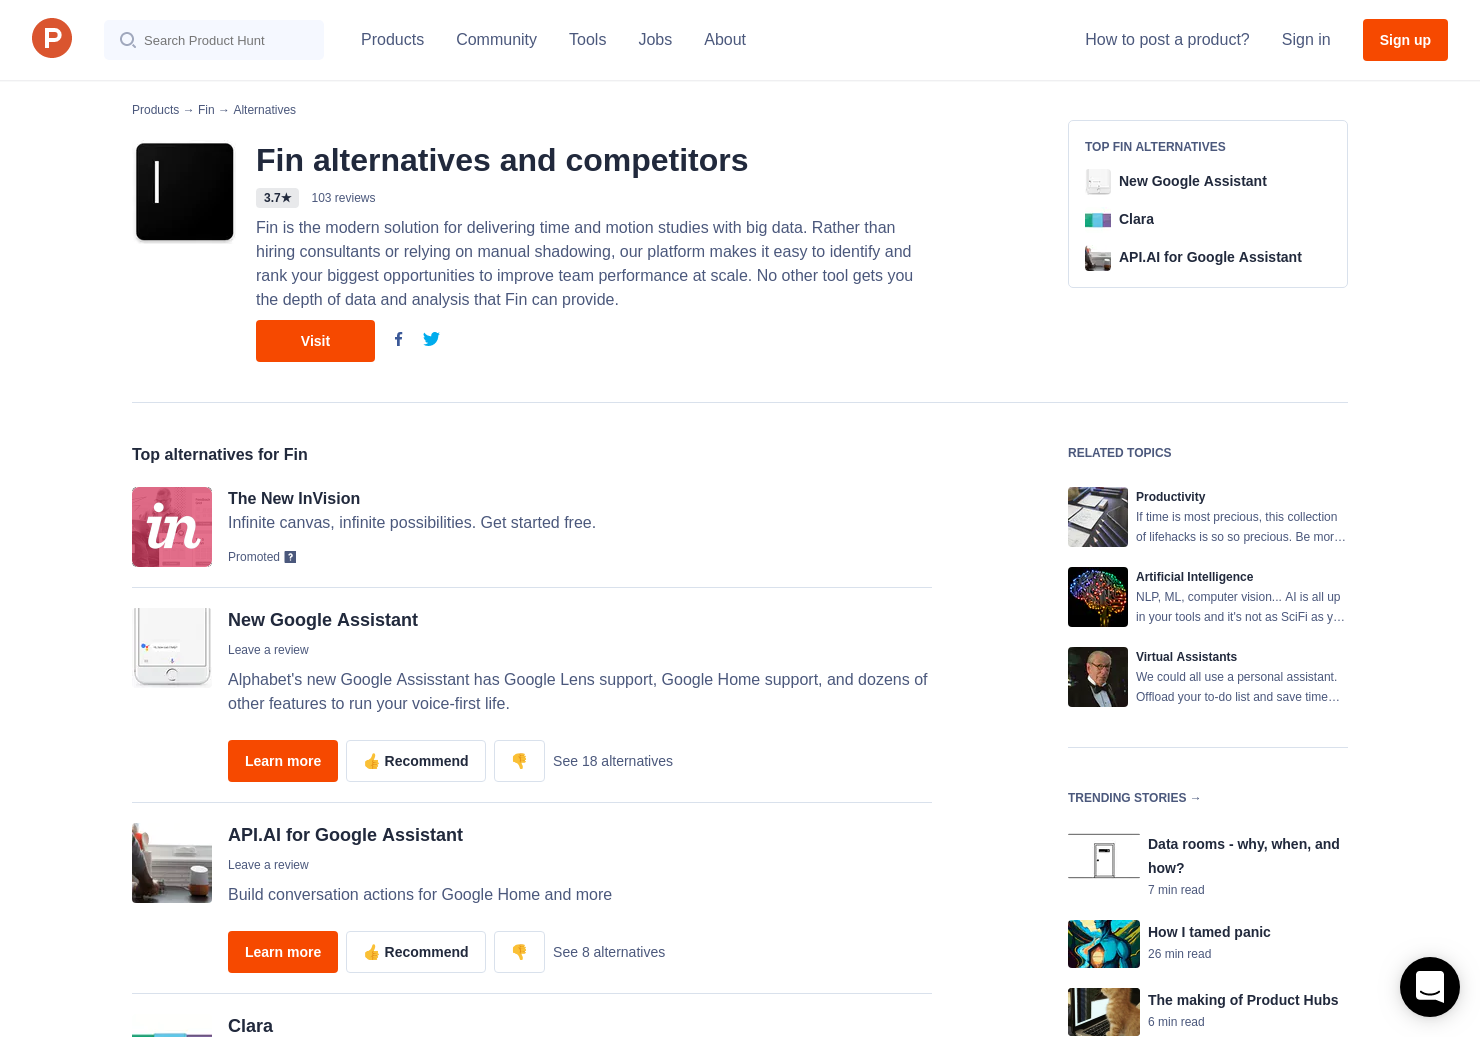 22 Alternatives to Fin | Product Hunt